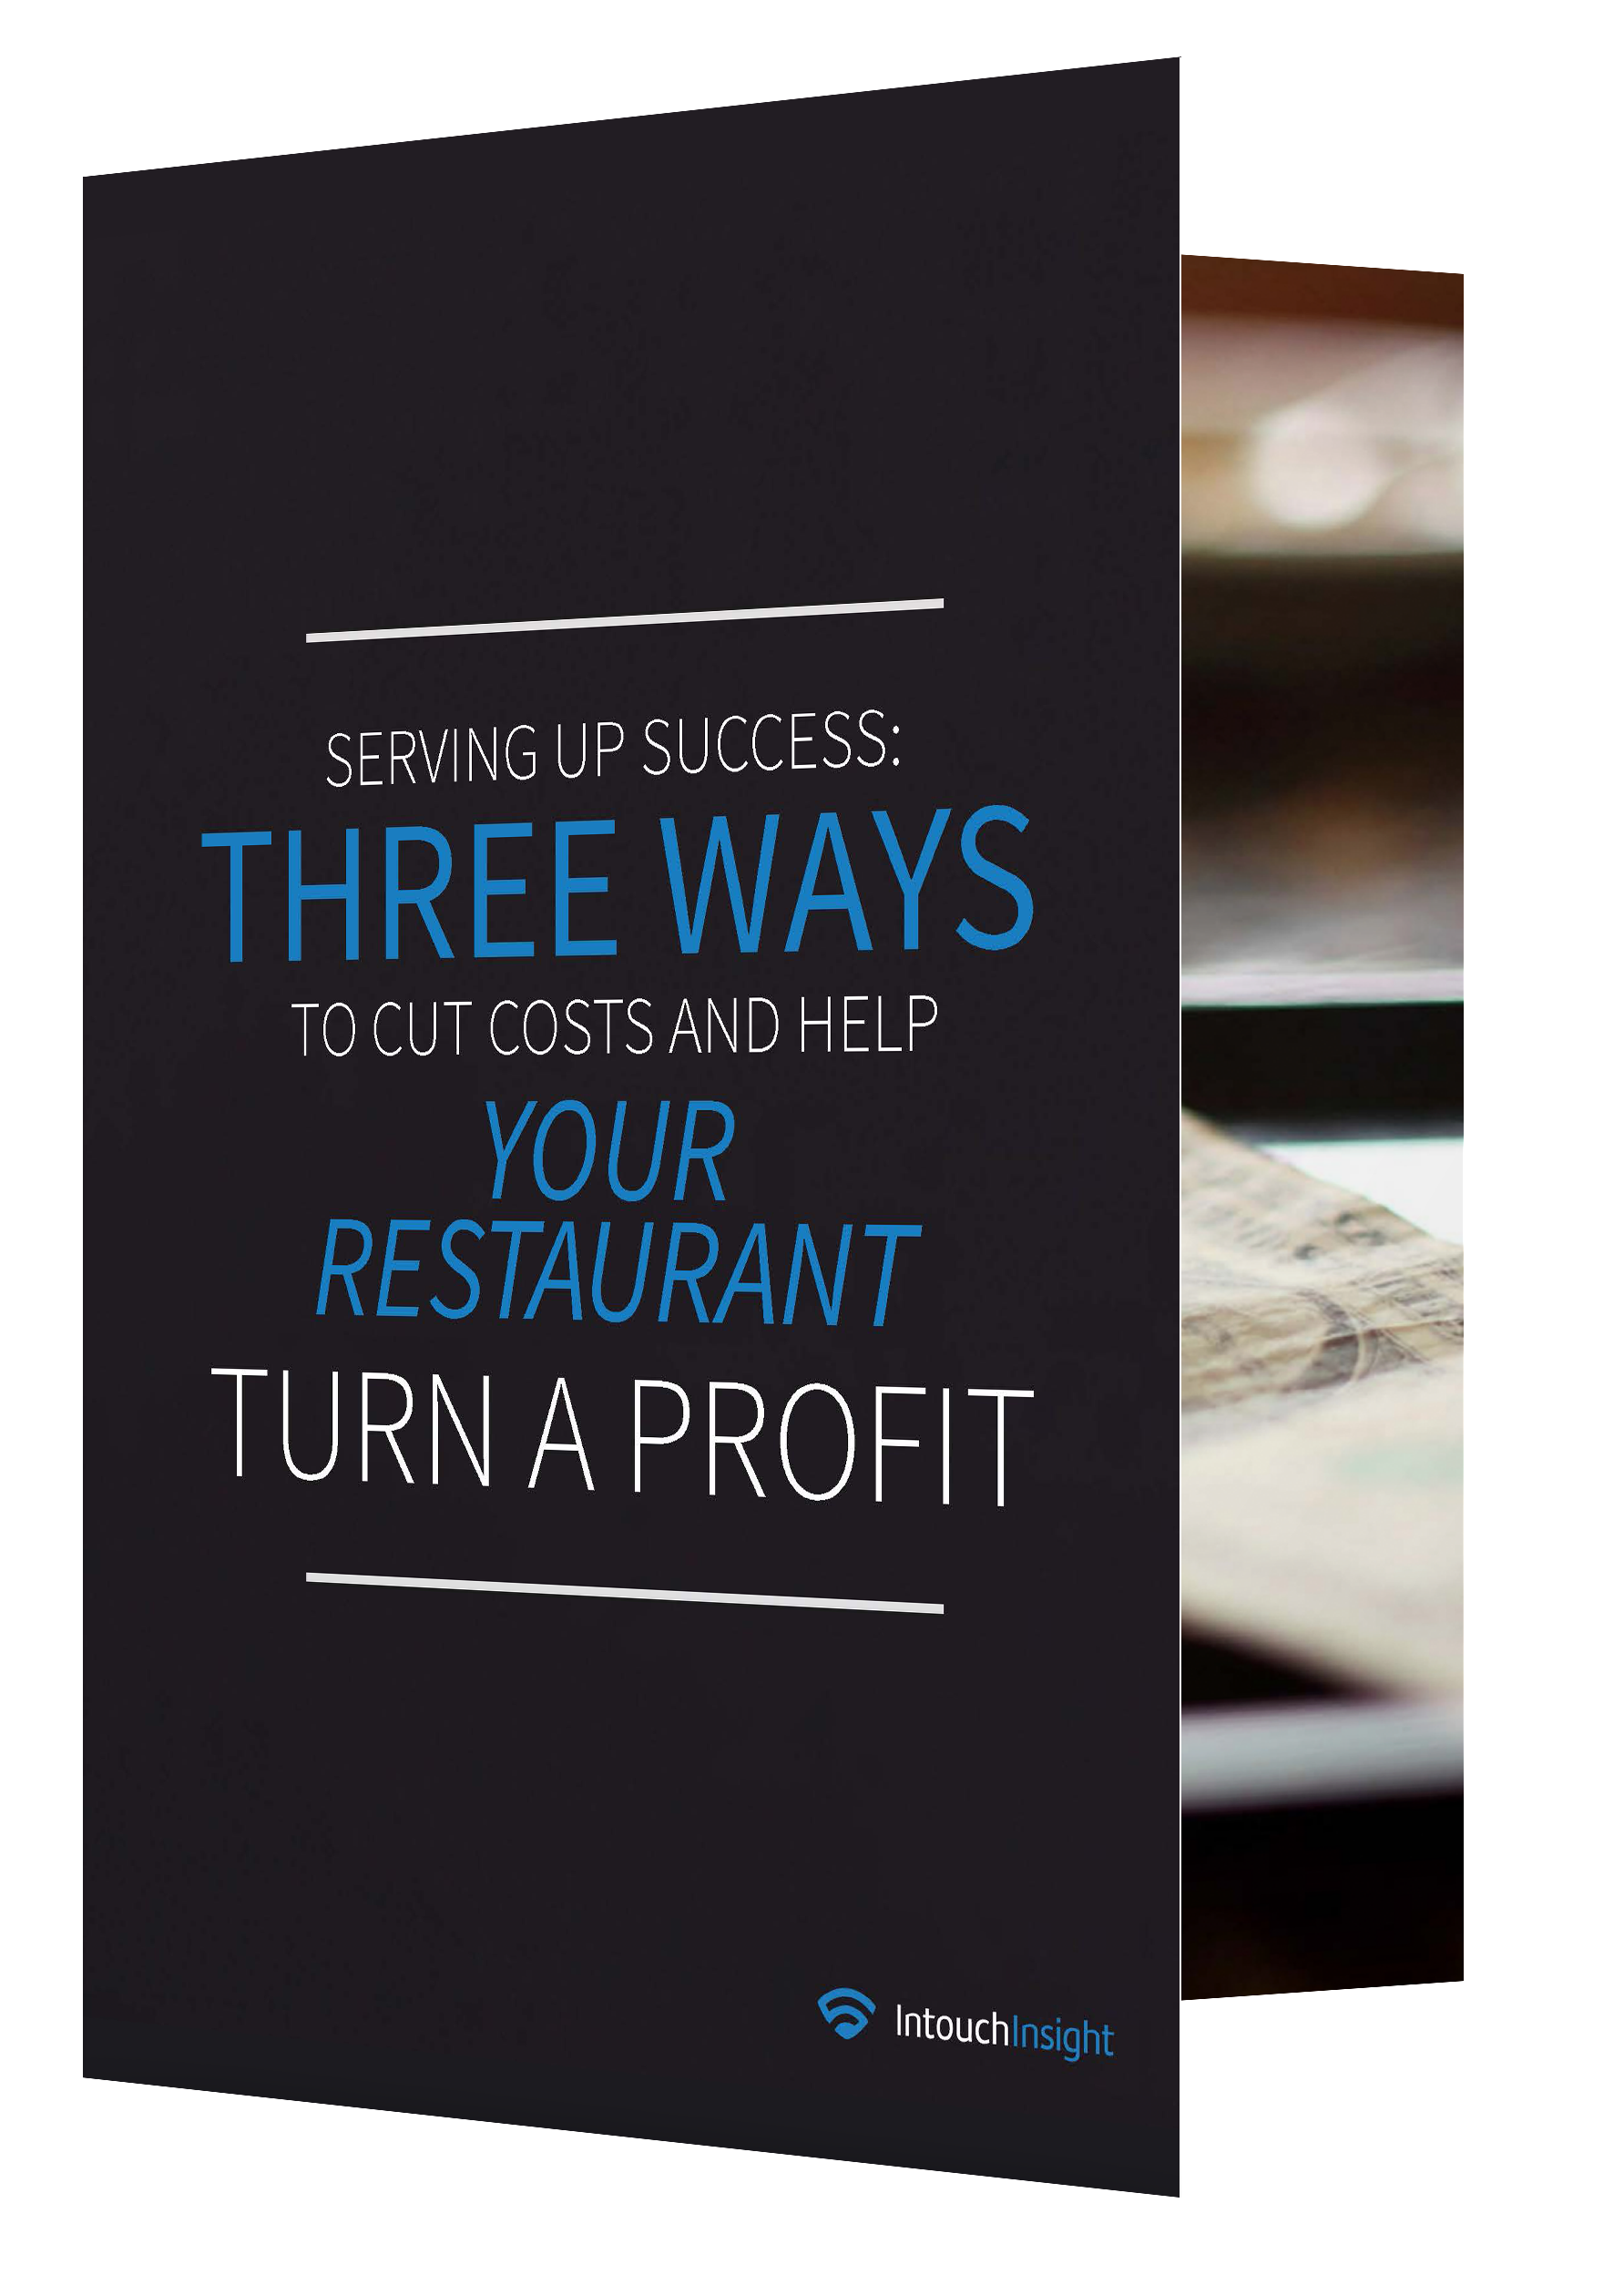 Serving Up Success: Three Ways to Cut Costs & Help your Restaurant Turn a Profit